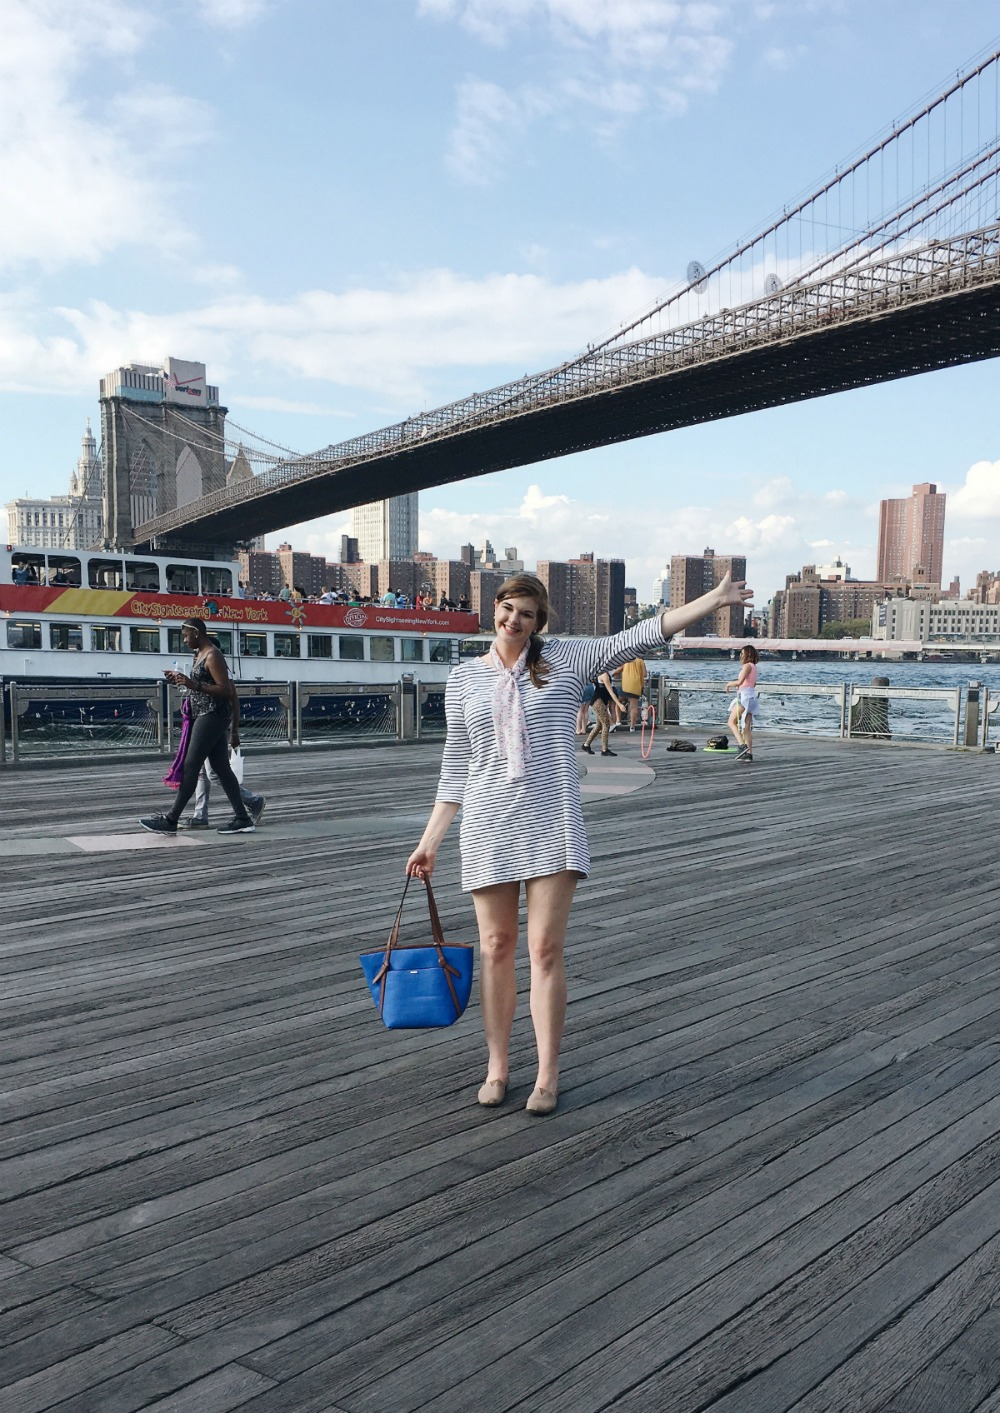 Affordable New York City Travel Guide I Dumbo, Brooklyn #Travel #TravelGuide #NYC